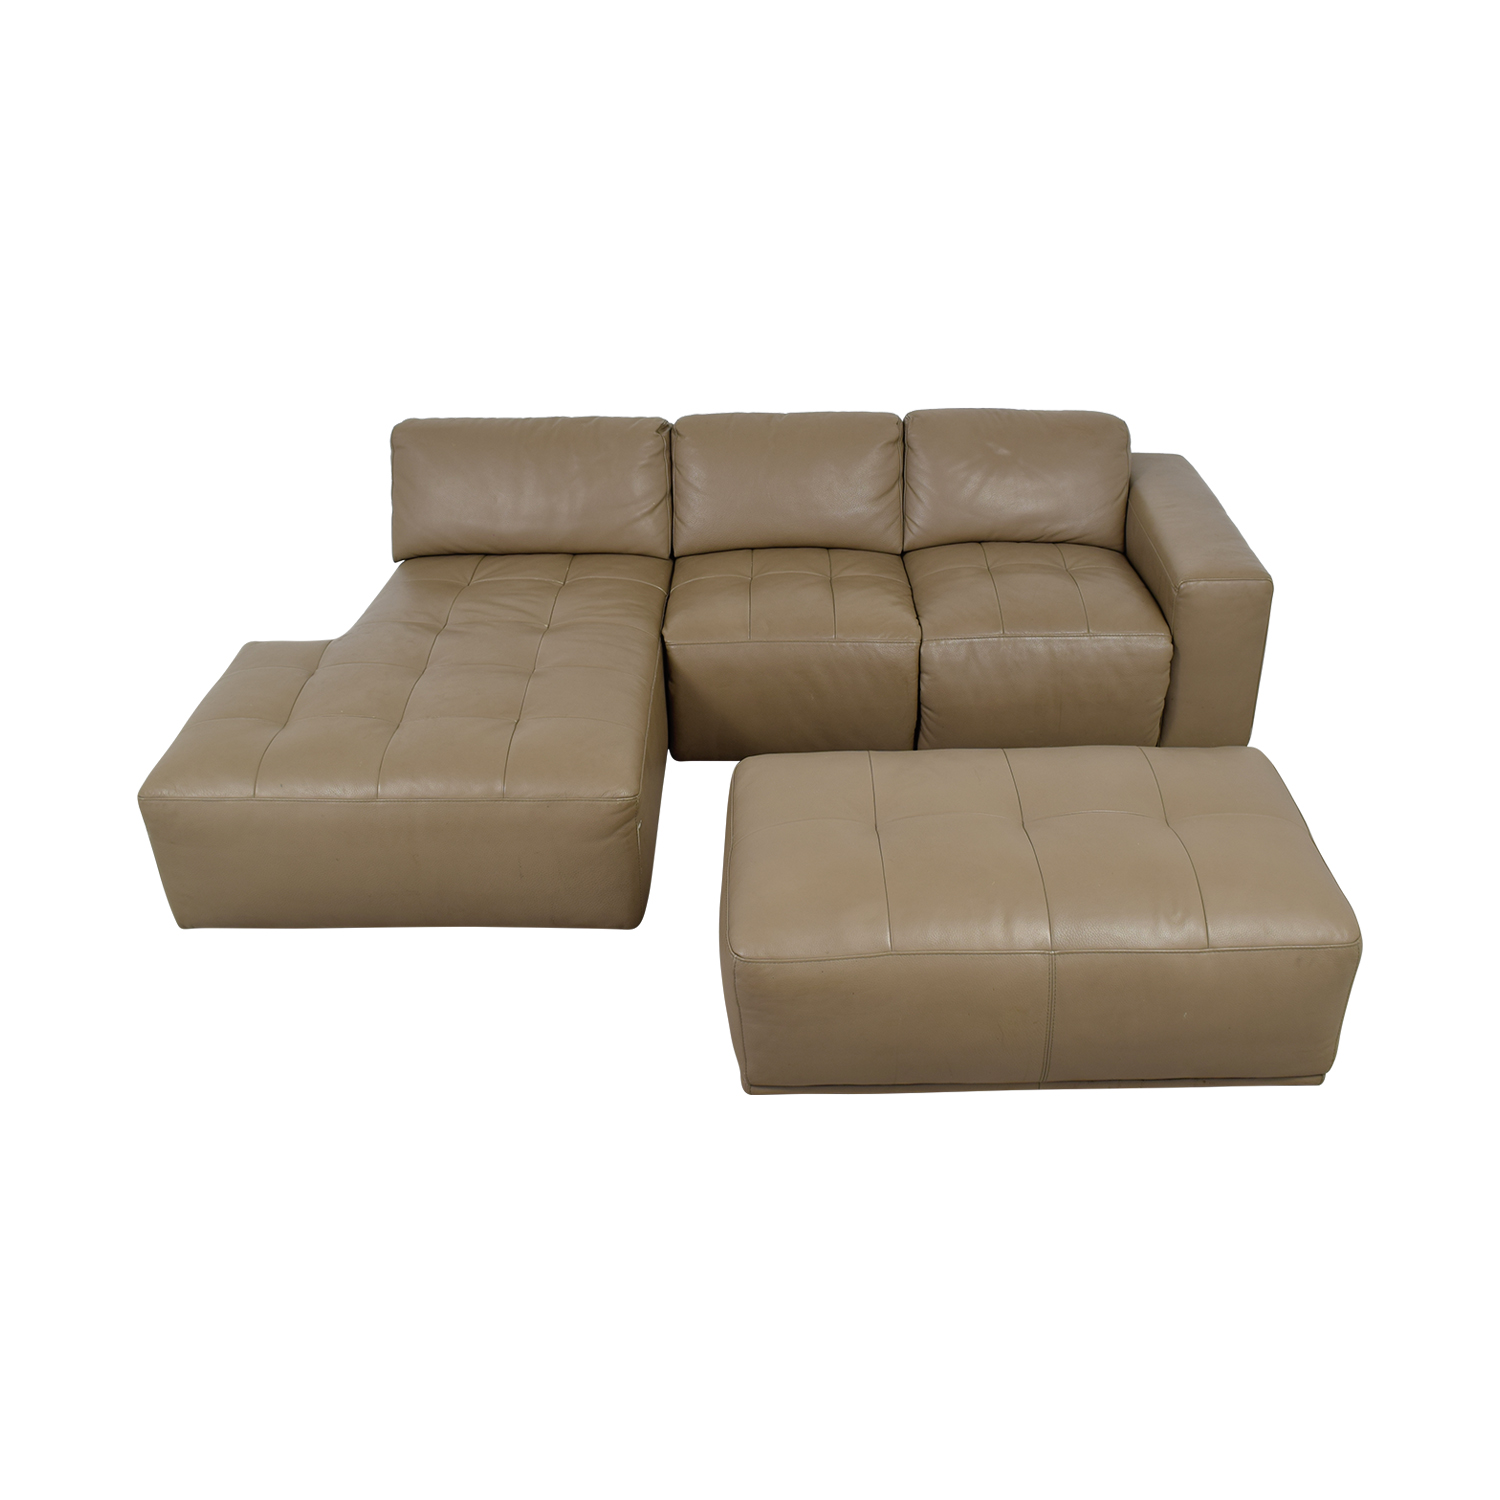 Planum Planum Beige Leather Chaise Sectional with Ottoman dimensions